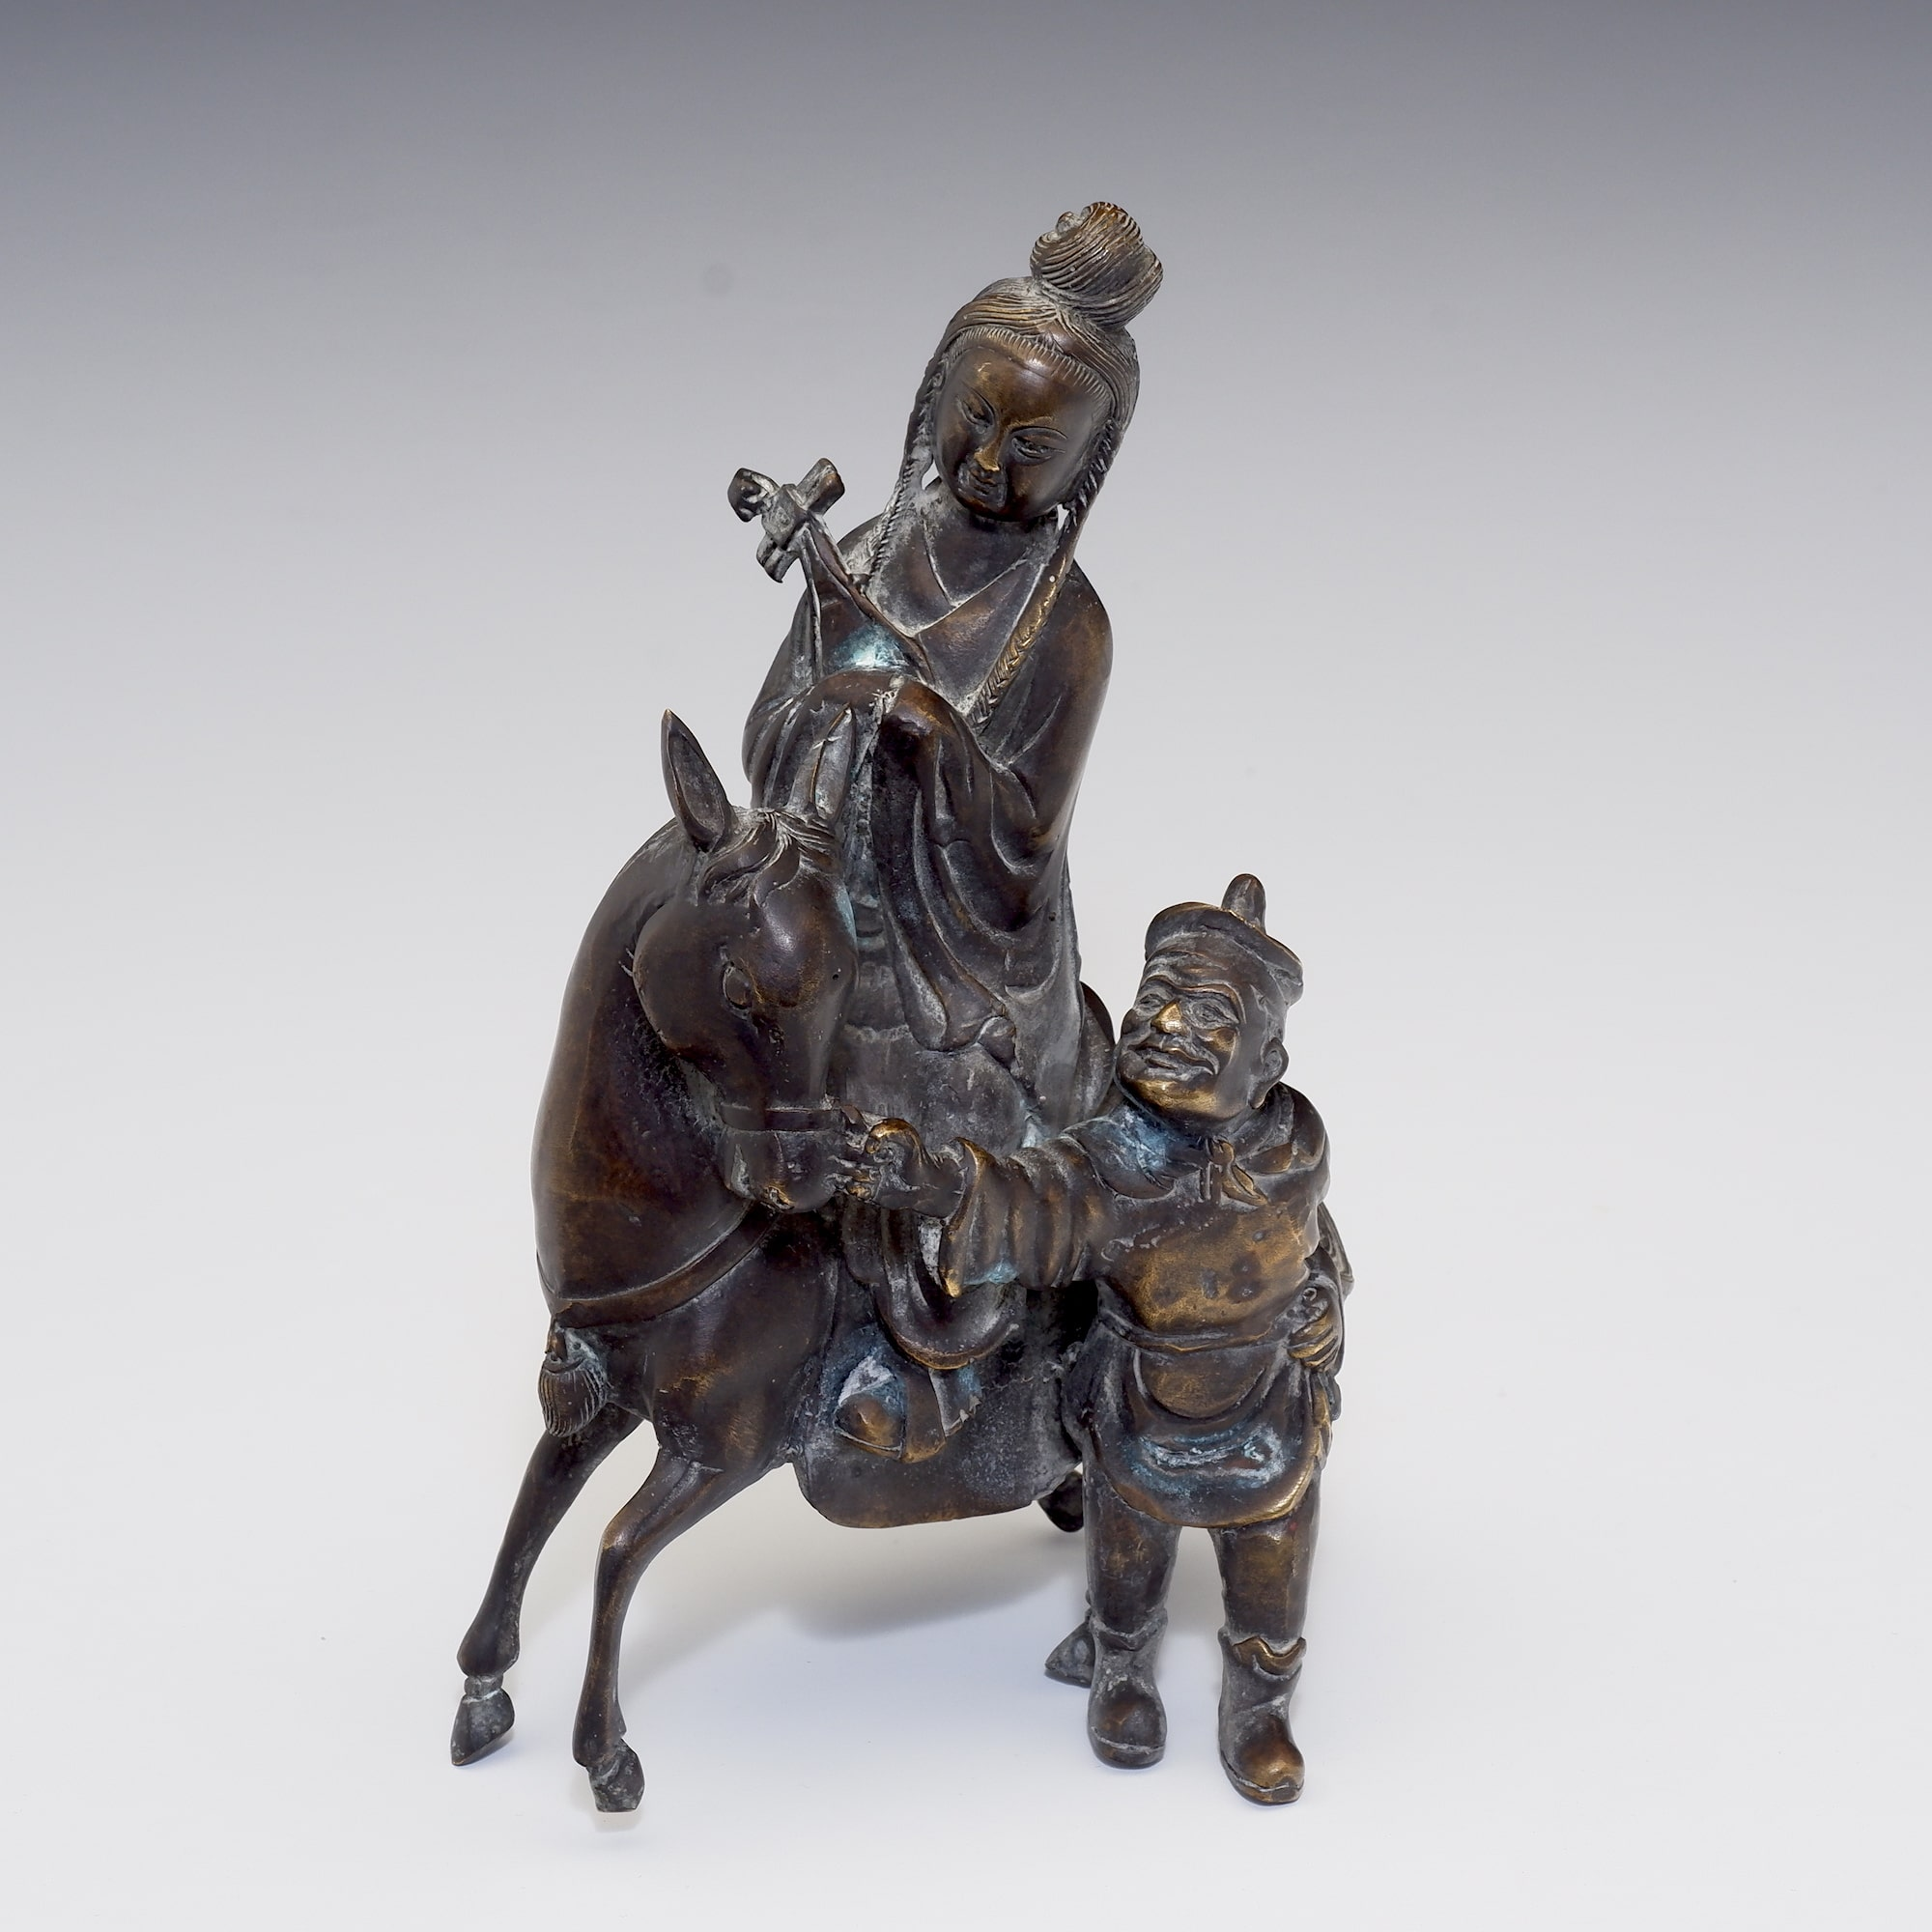 'Chinese Bronze Figure of a Musician on Horseback with Attendant'